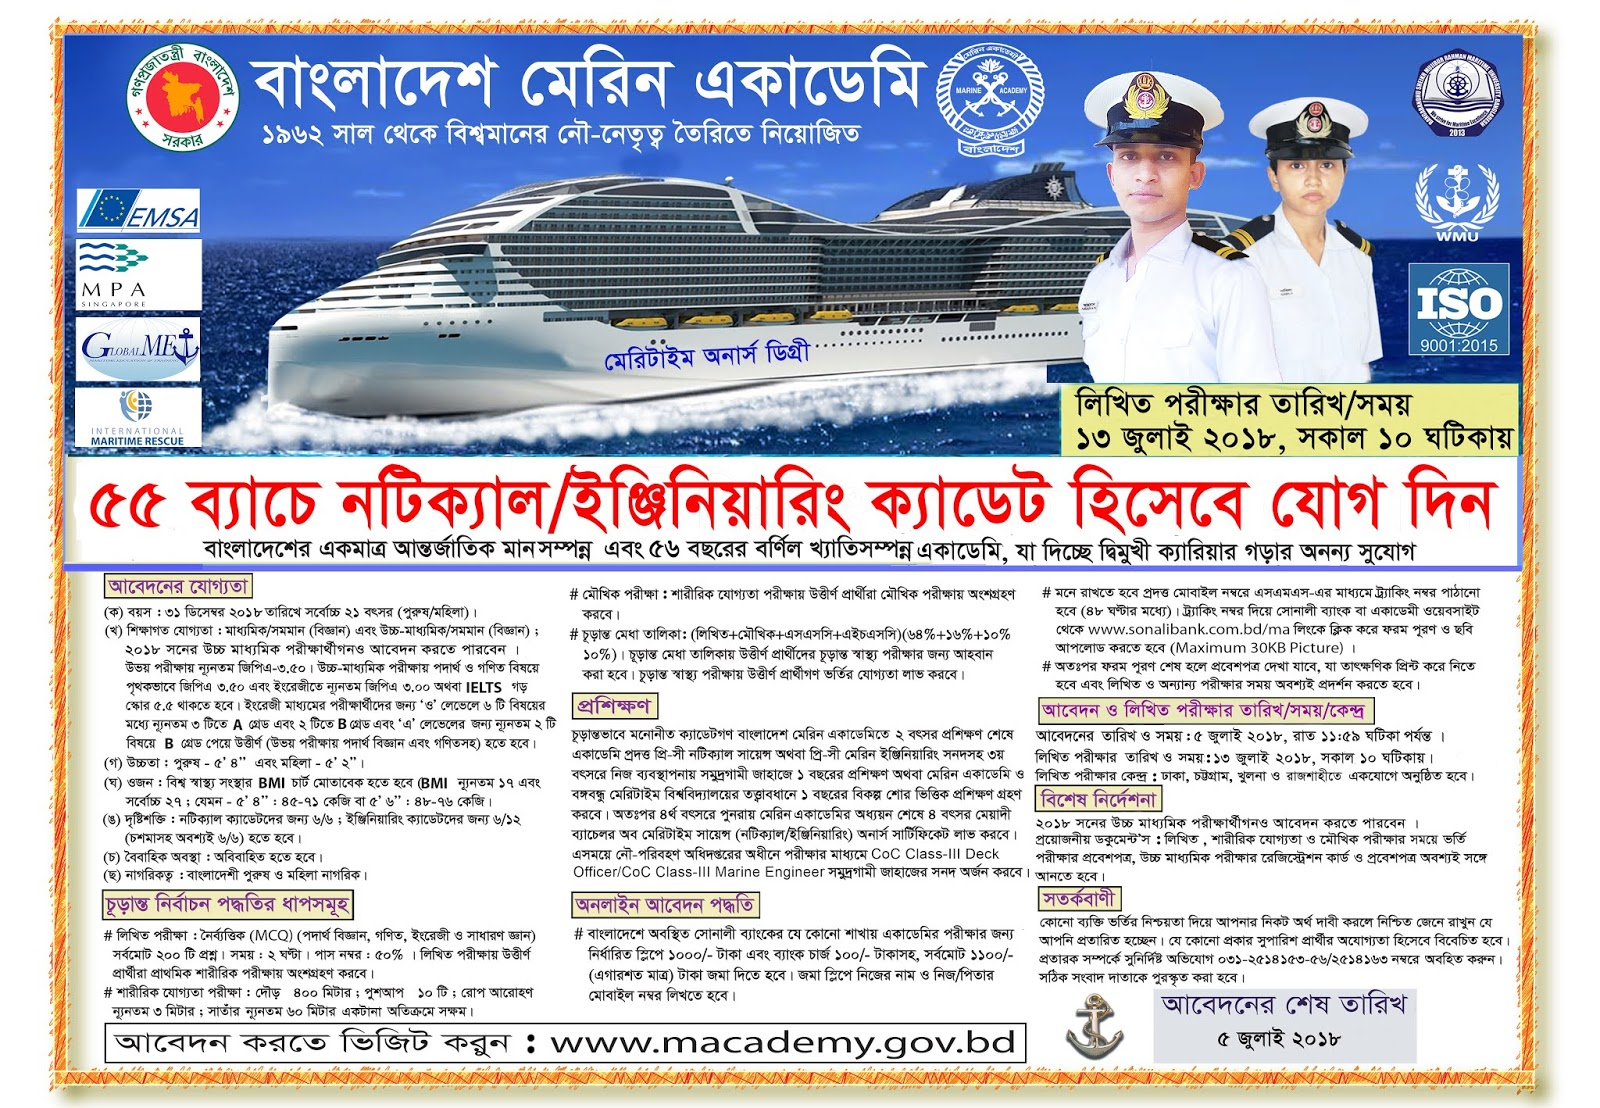 Bangladesh Marine Academy 55th batch Nautical/Engineering Cadet Recruitment Circular 2018